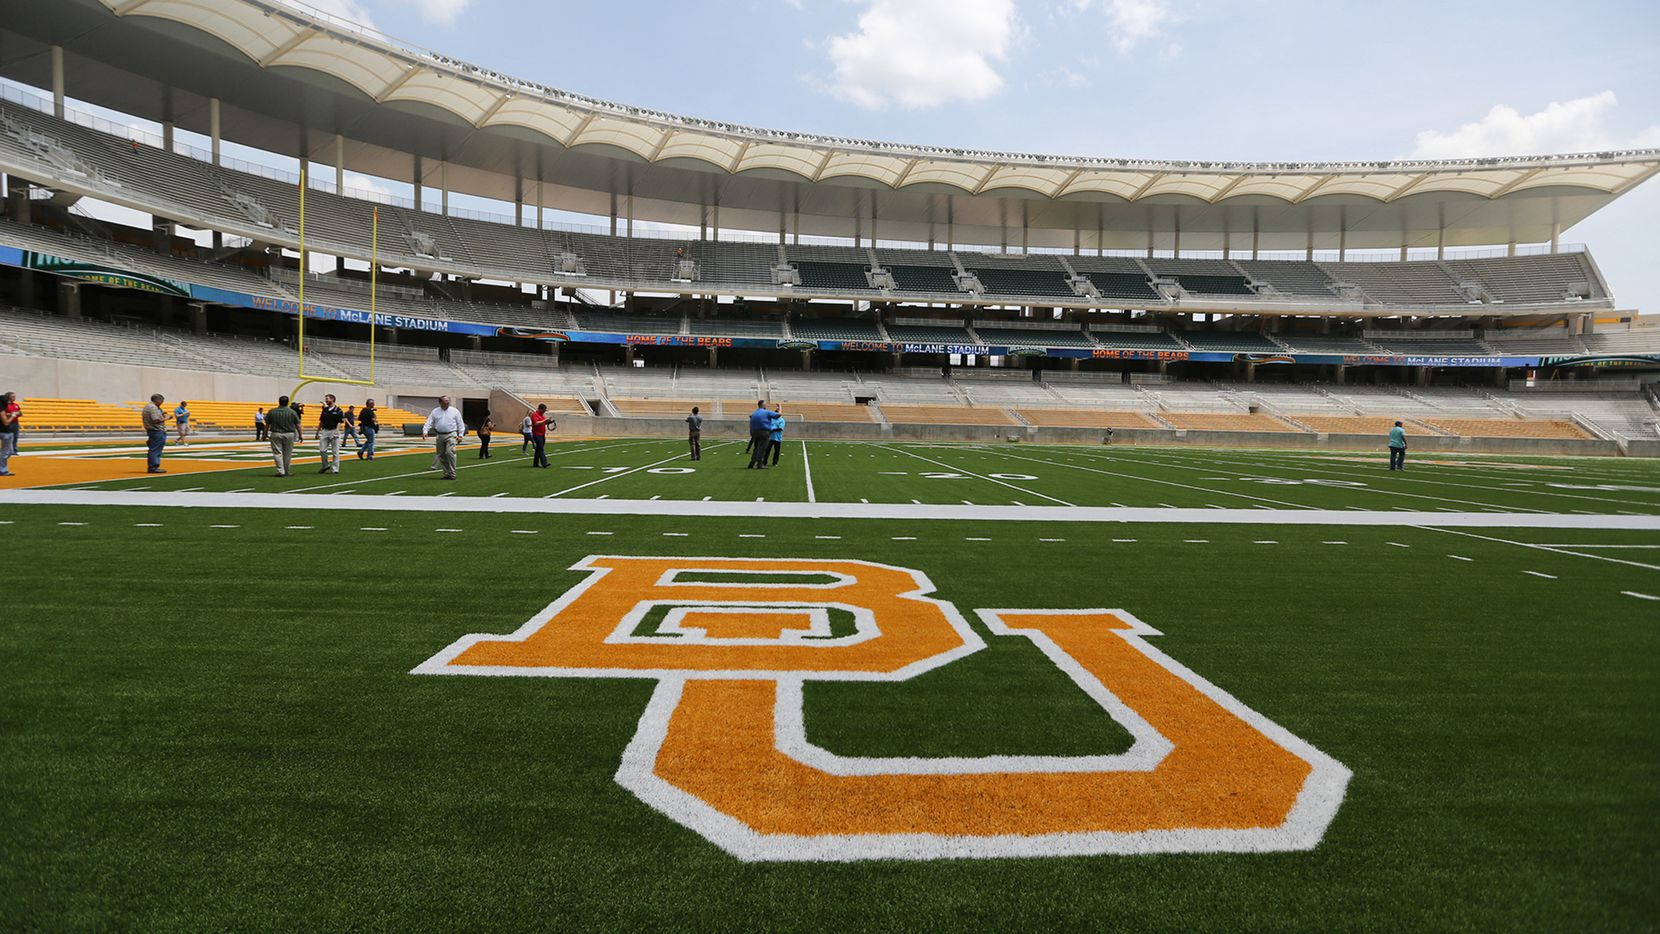 FILE - This Aug. 18, 2014 file photo shows the Baylor University logo on the football field at McLane Stadium in Waco, Texas.